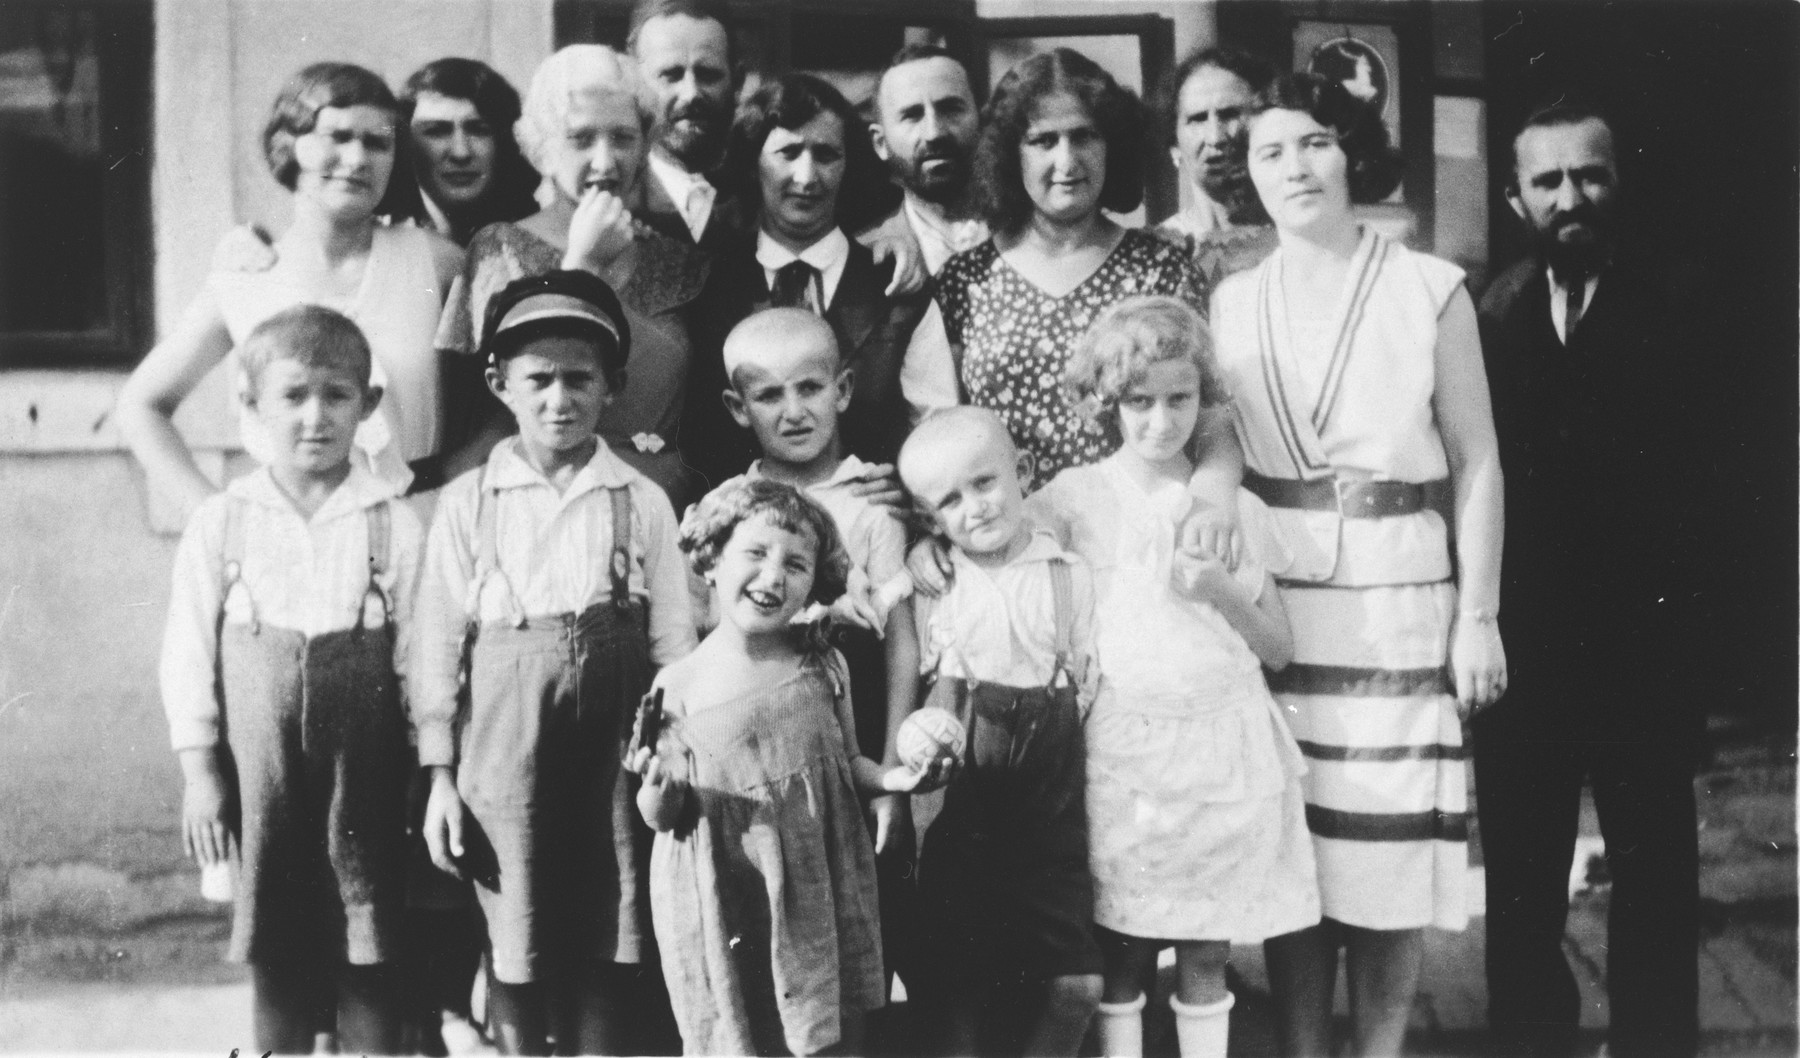 Group portrait of the extended Frisch and Genendlen family taken on the occasion of a visit by cousins in America.